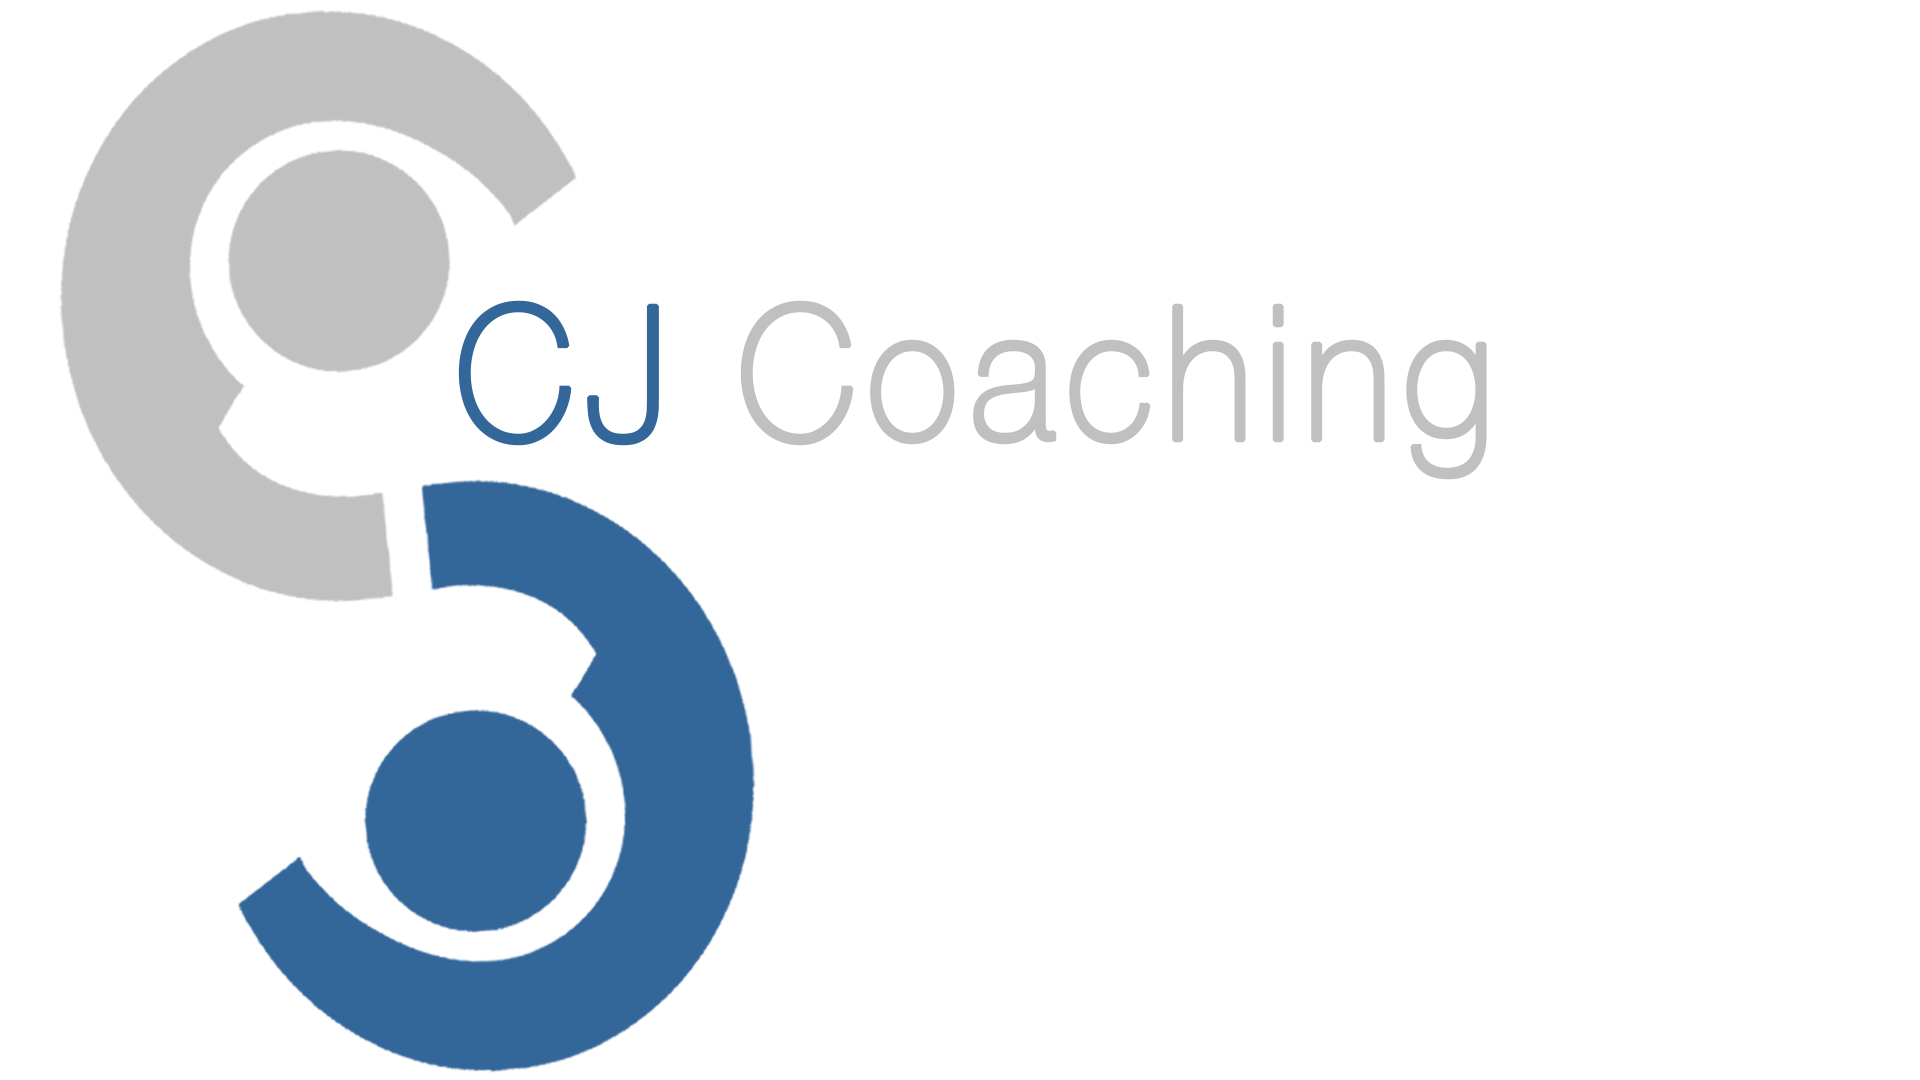 CJ Coaching